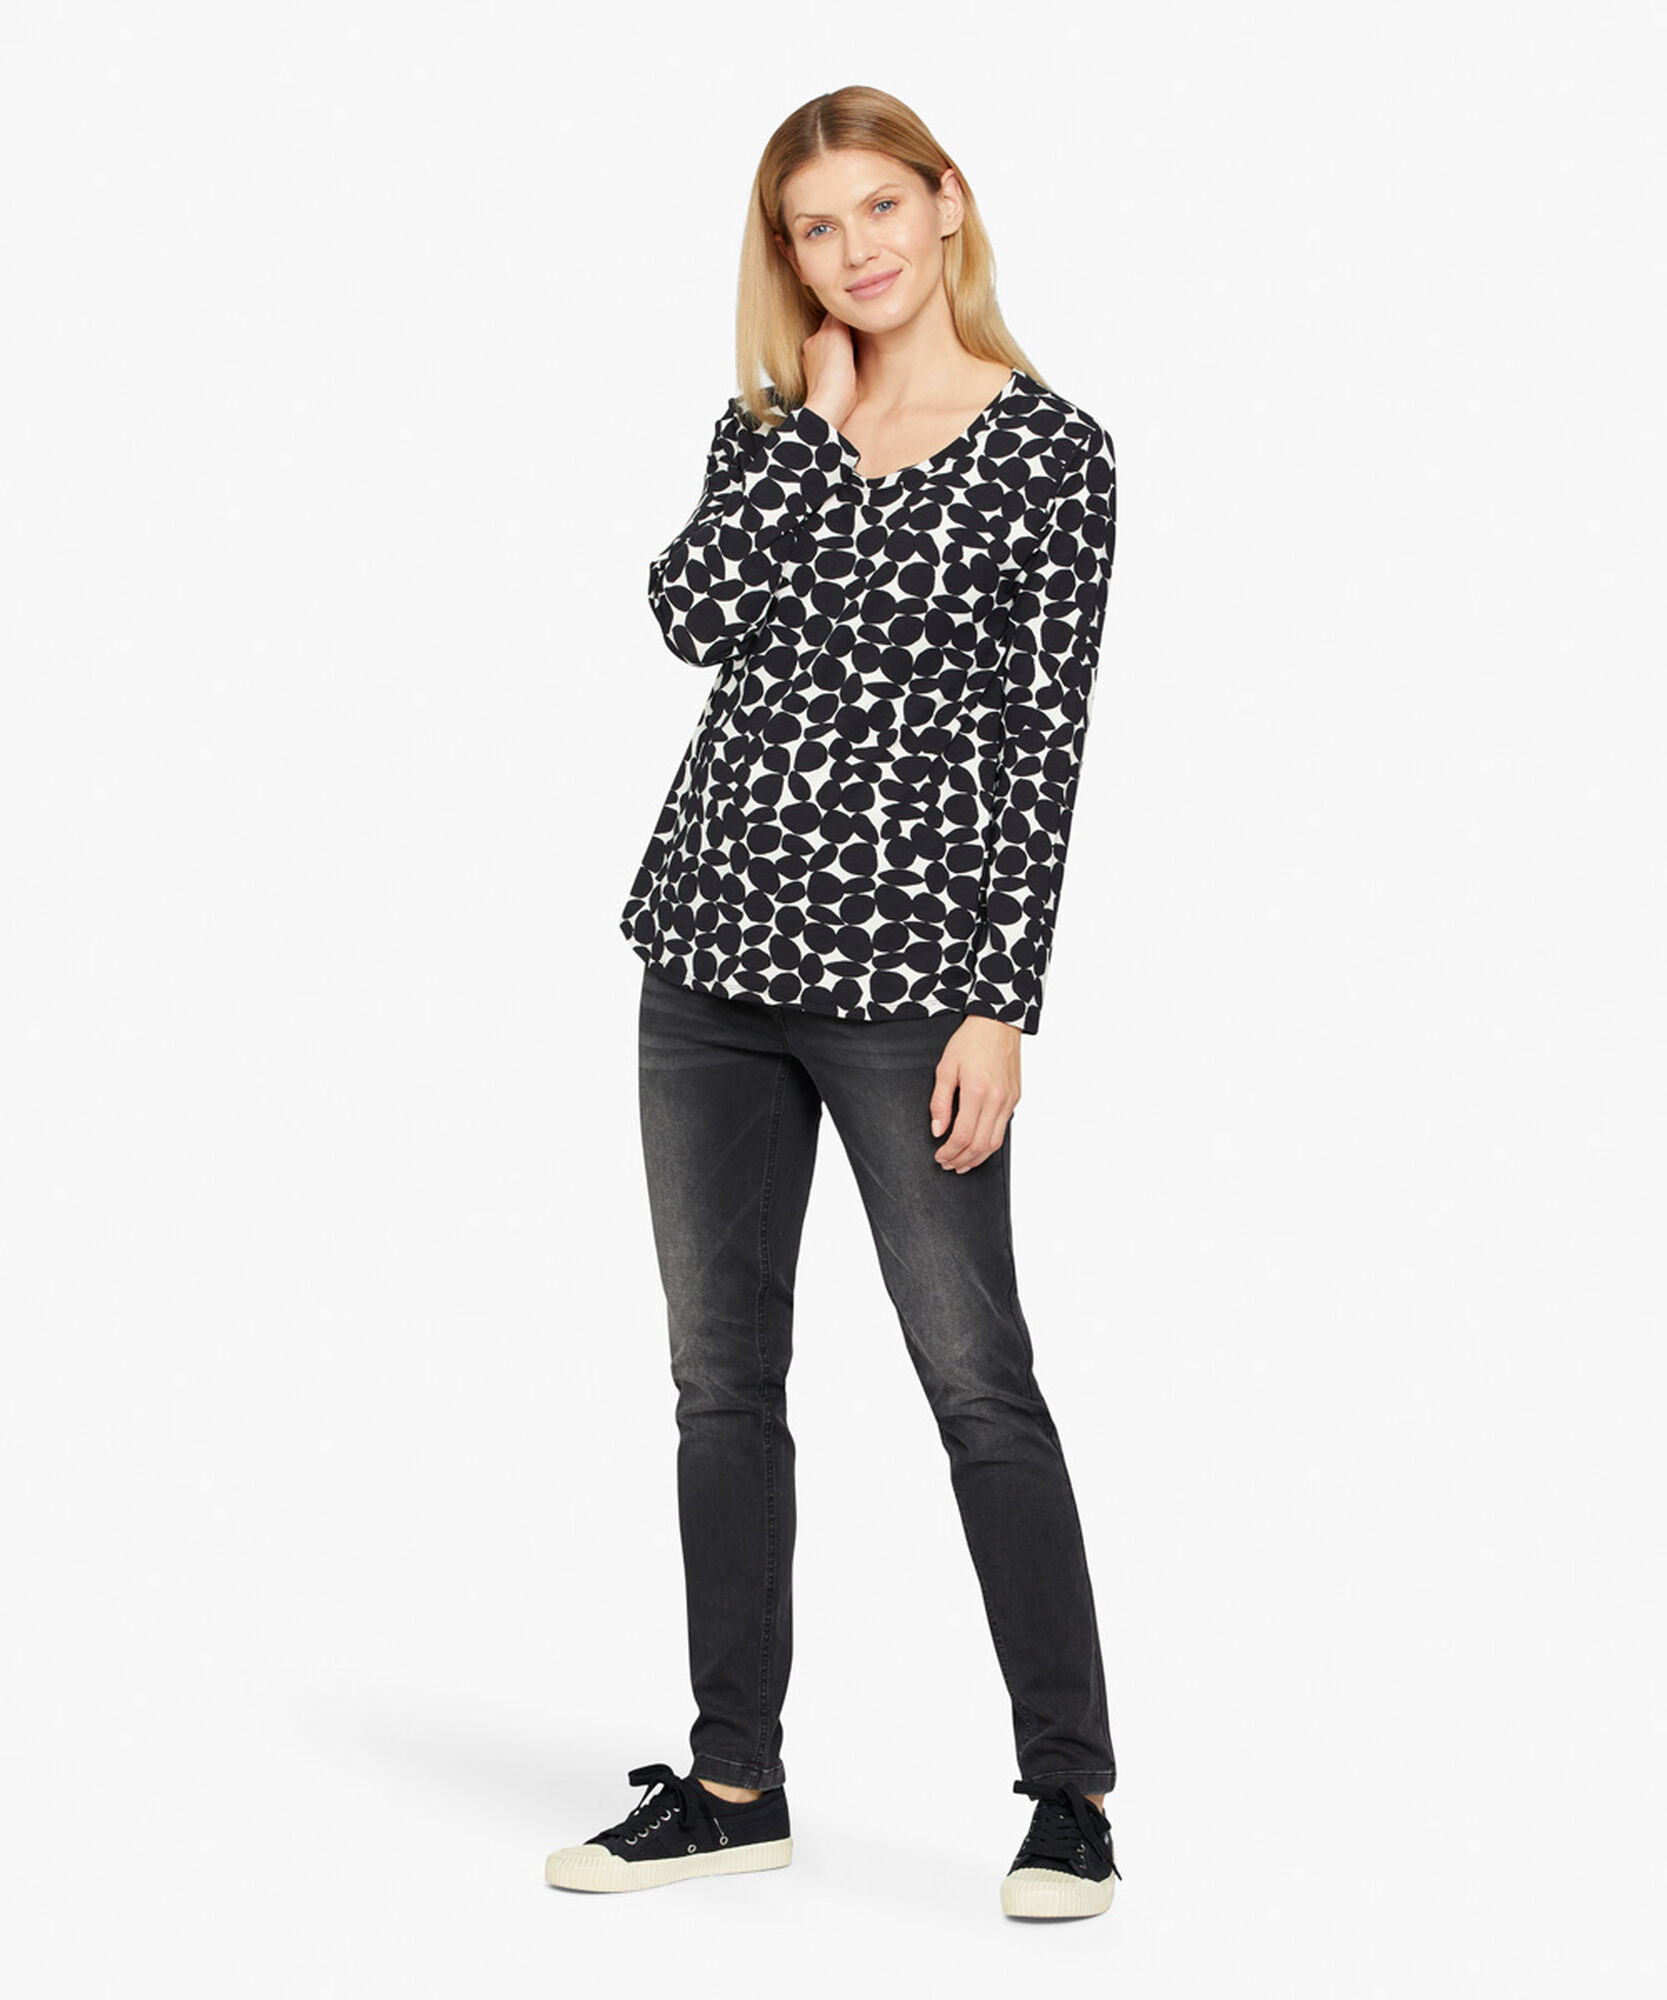 BADISNA SHIRT, Black, hi-res